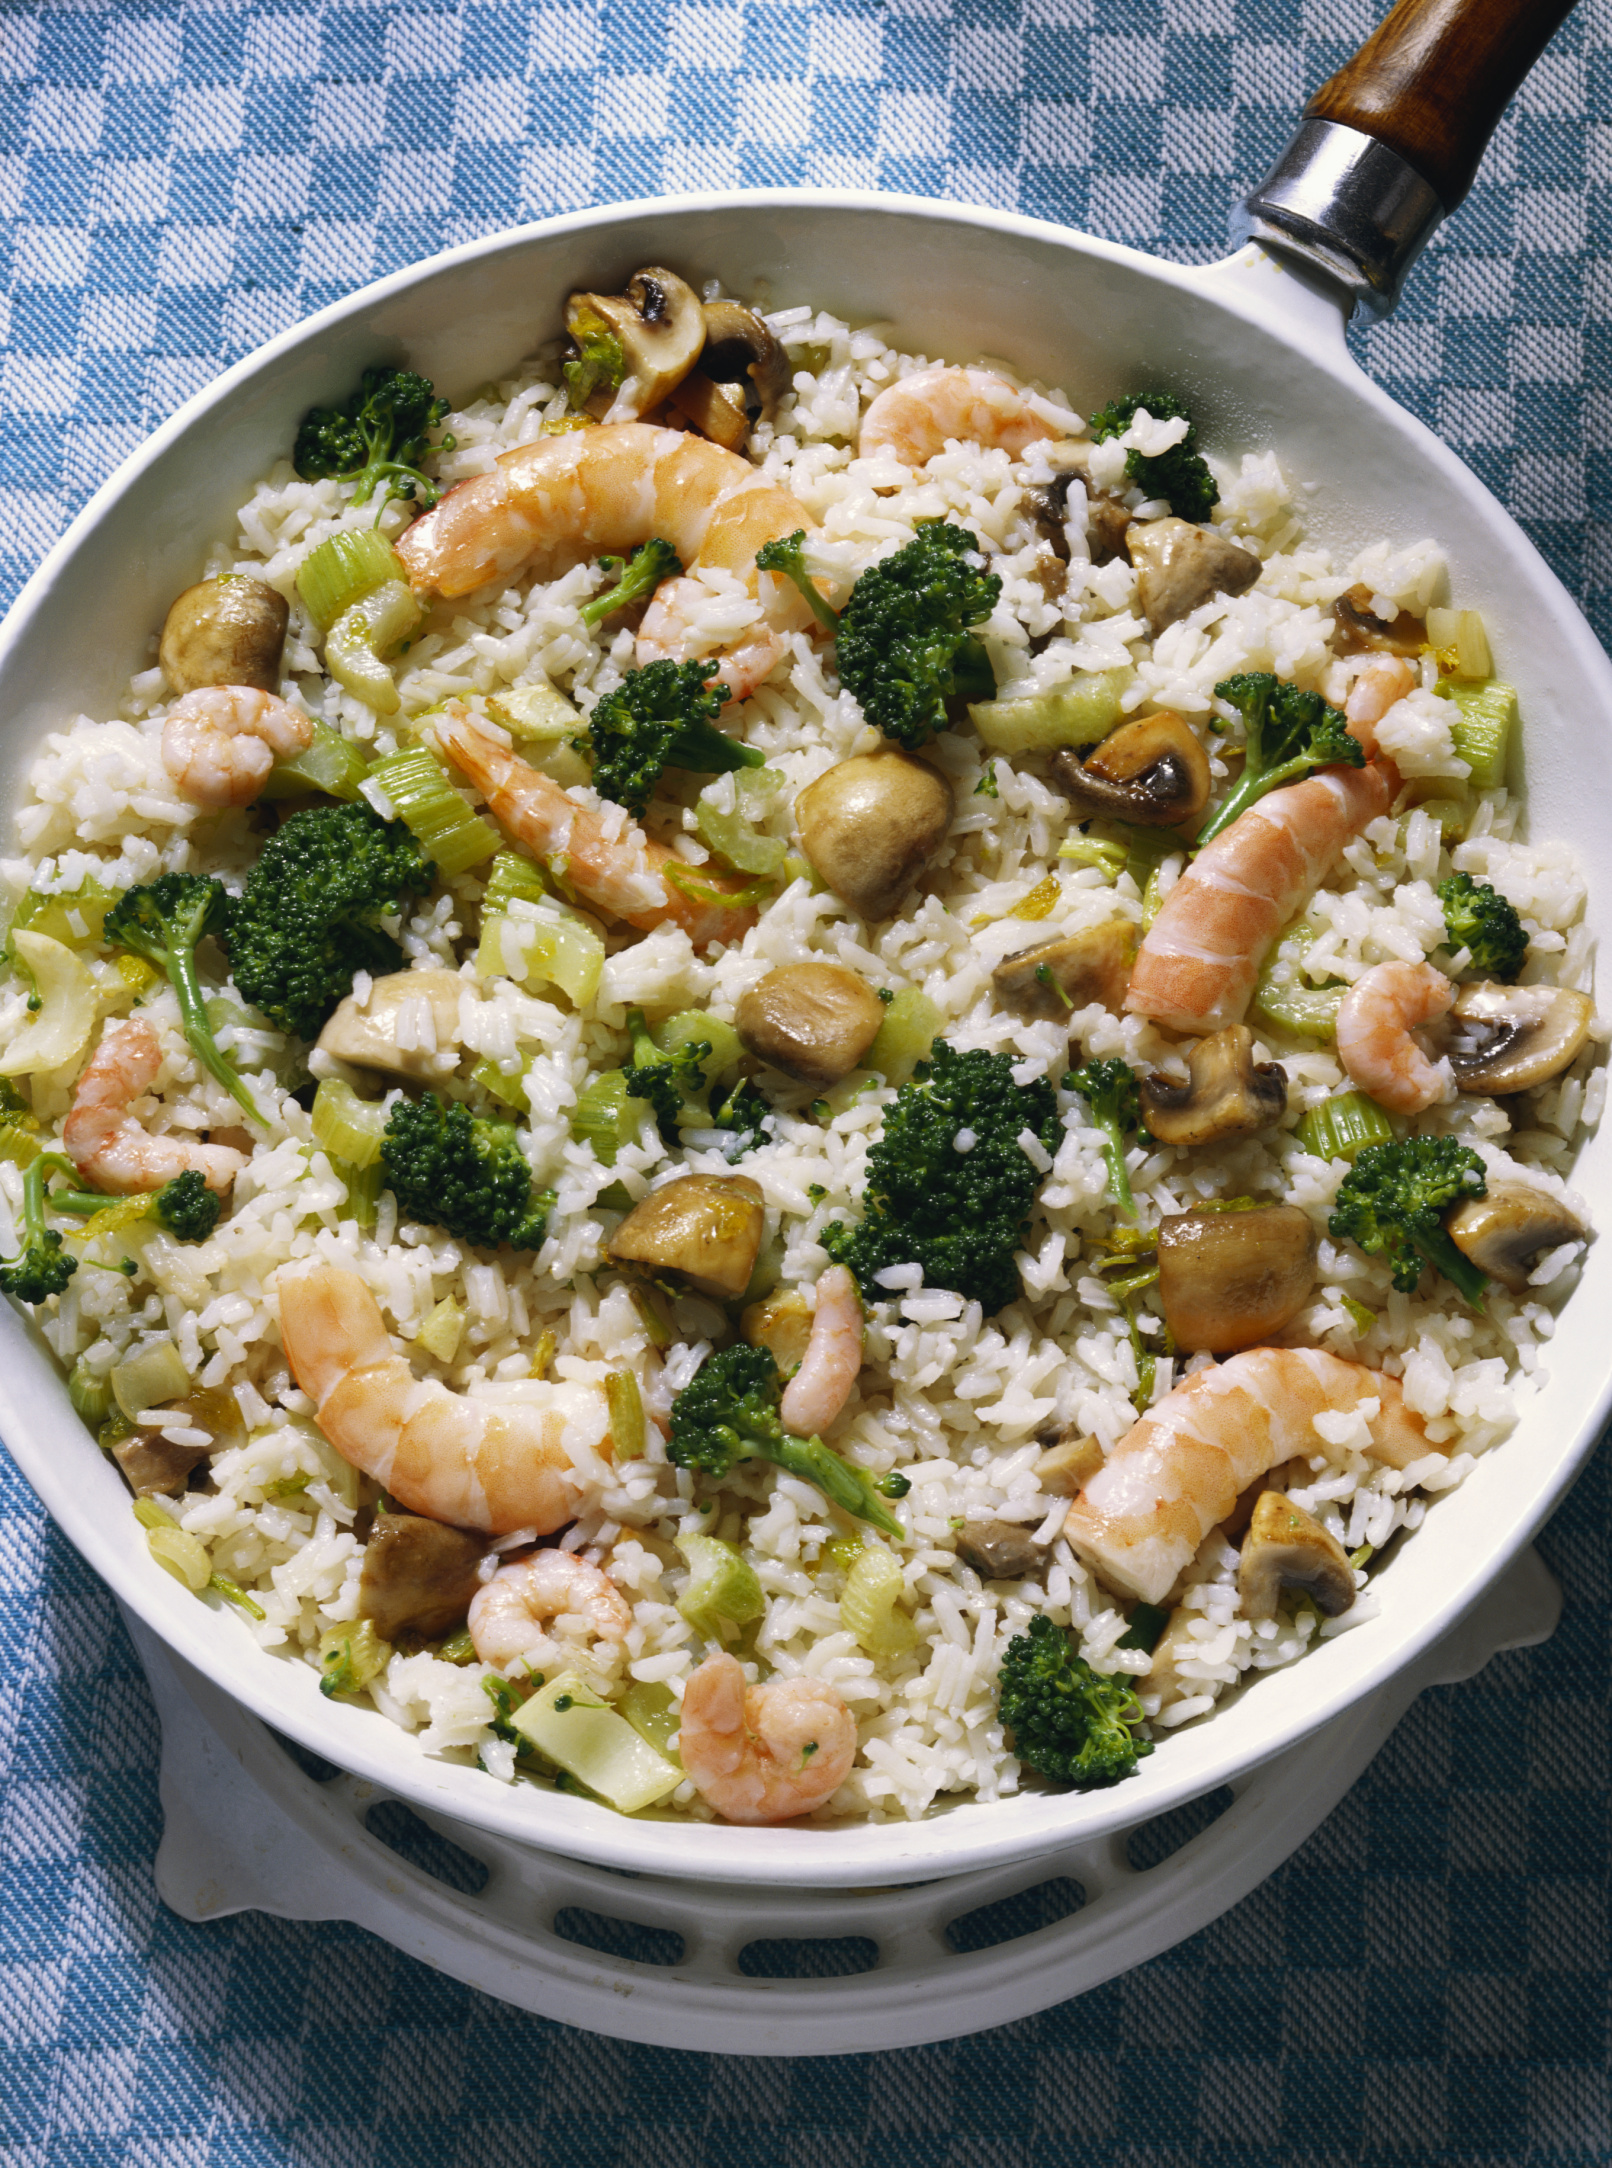 Combine broccoli with whole grains to obtain more protein.